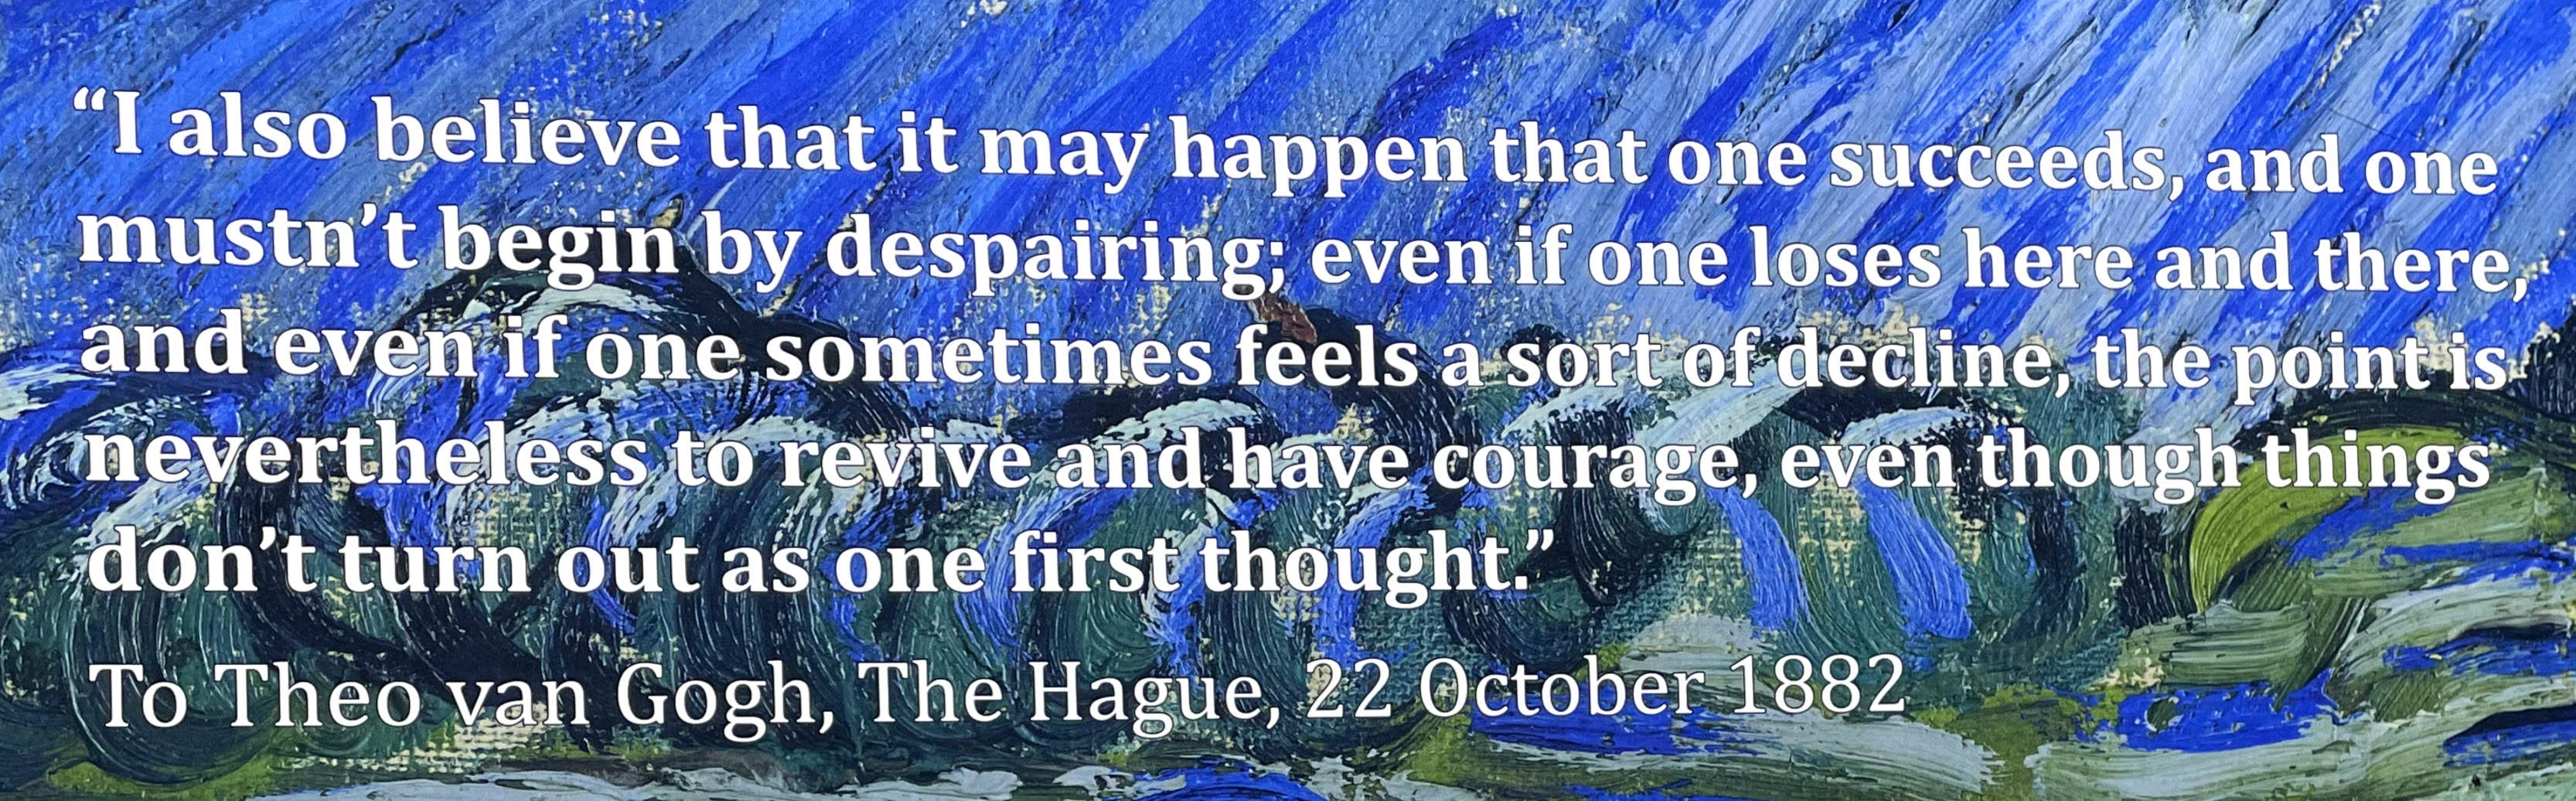 """Quote, text against van Gogh brushstrokes: """"I also believe that it may happen that one succeeds, and one mustn't begin by despairing; even if one loses here and there, and even if one sometimes feels a sort of decline, the point is nevertheless to revive and have courage, even though things don't turn out as one first thought."""" To Theo van Gogh, The Hague, 22 October 1882"""